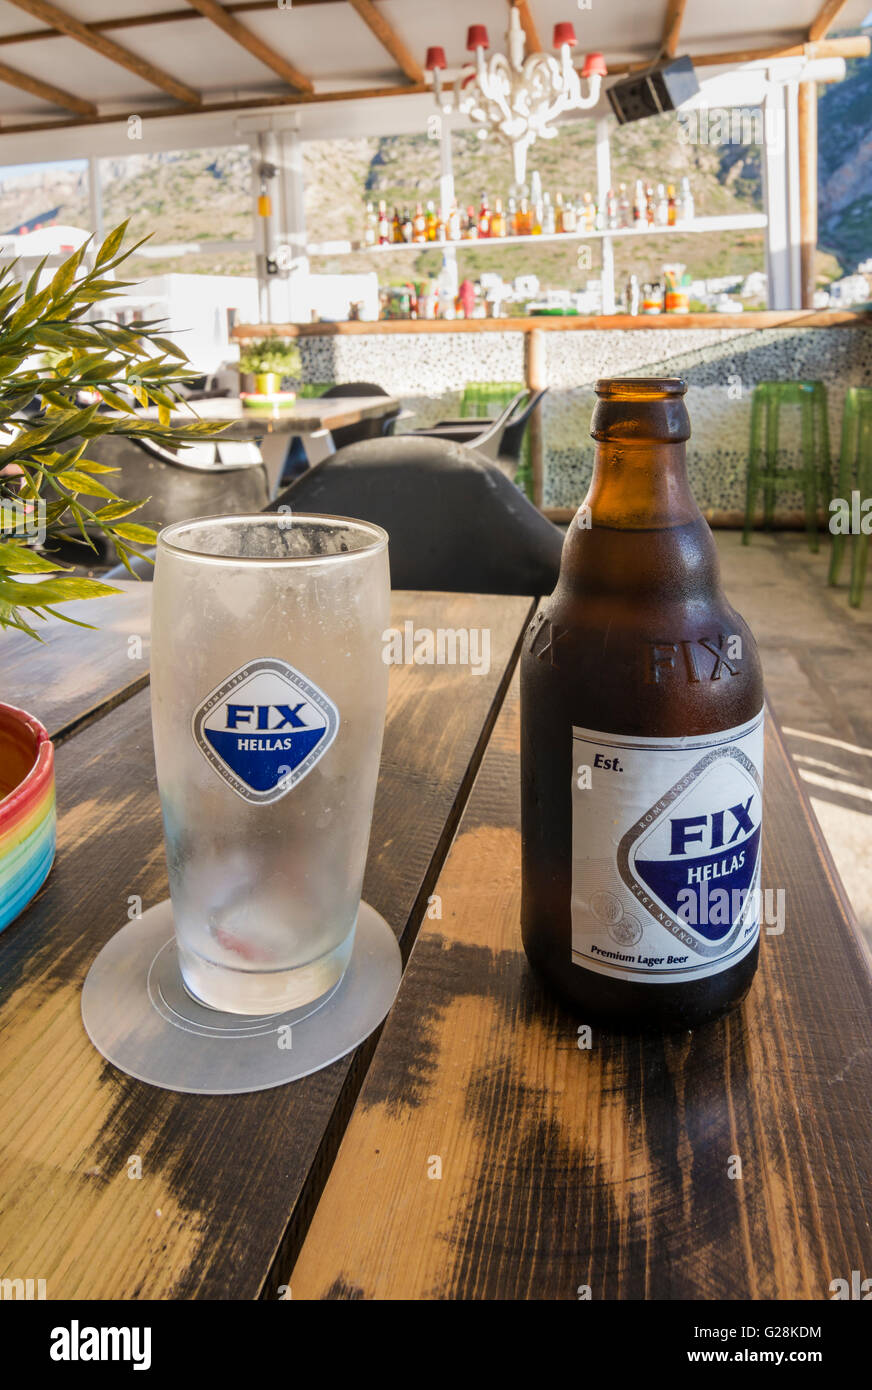 Greek FIX beer and glass on a table in a bar in Greece - Stock Image